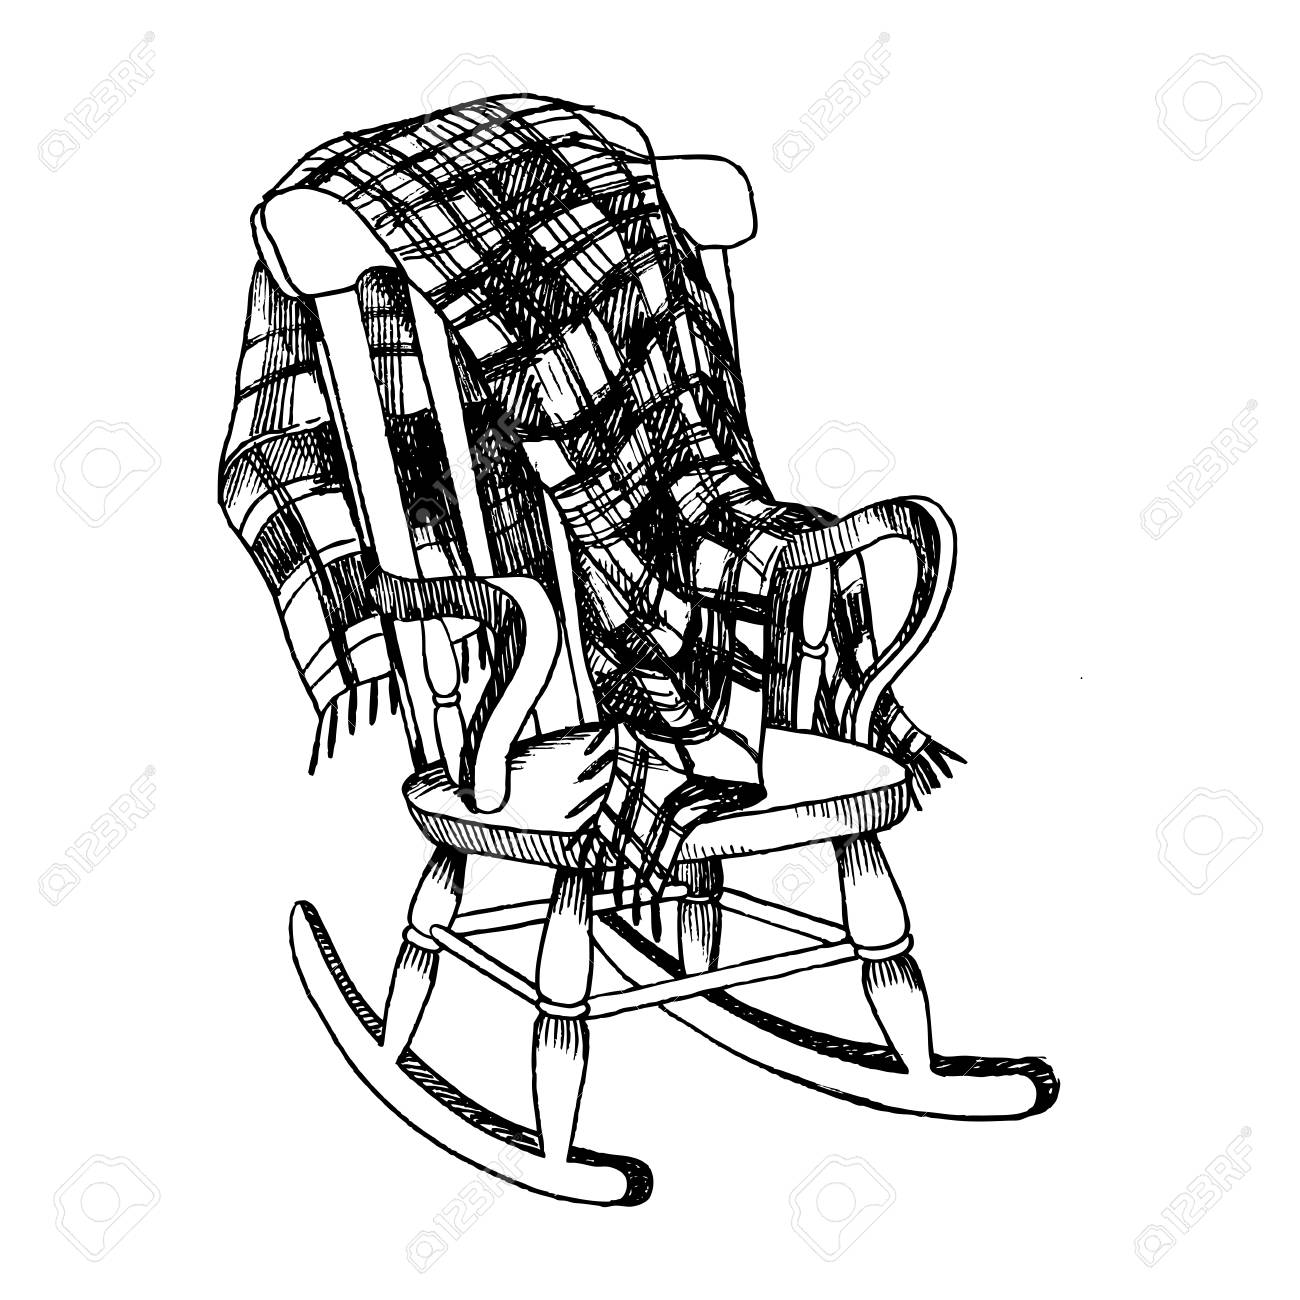 1300x1300 Rocking Chair And Plaid Blanket Engraving Vector Illustration